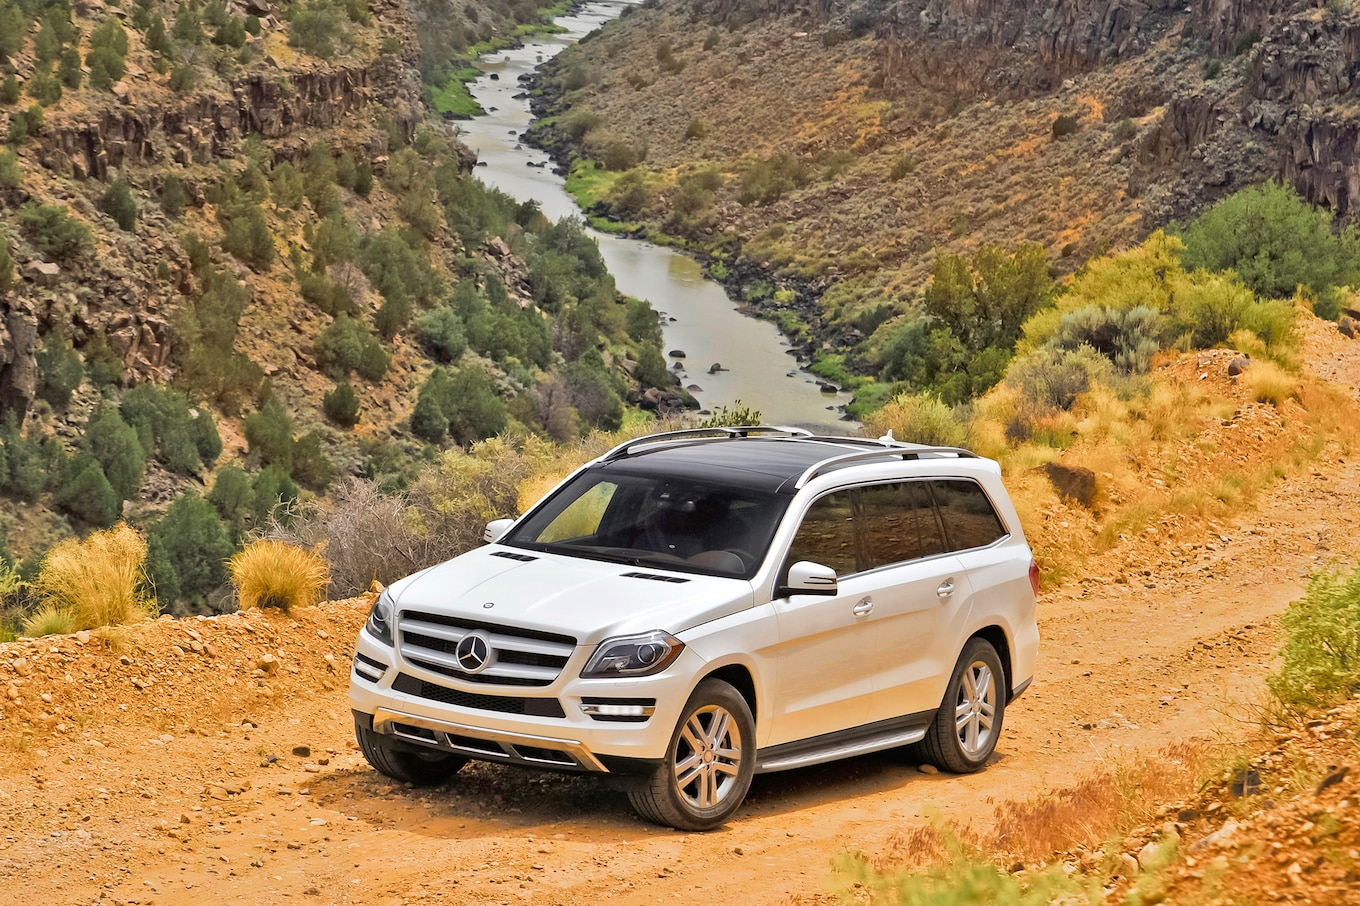 2014 Mercedes-Benz GL-Class Reviews and Rating | Motor Trend